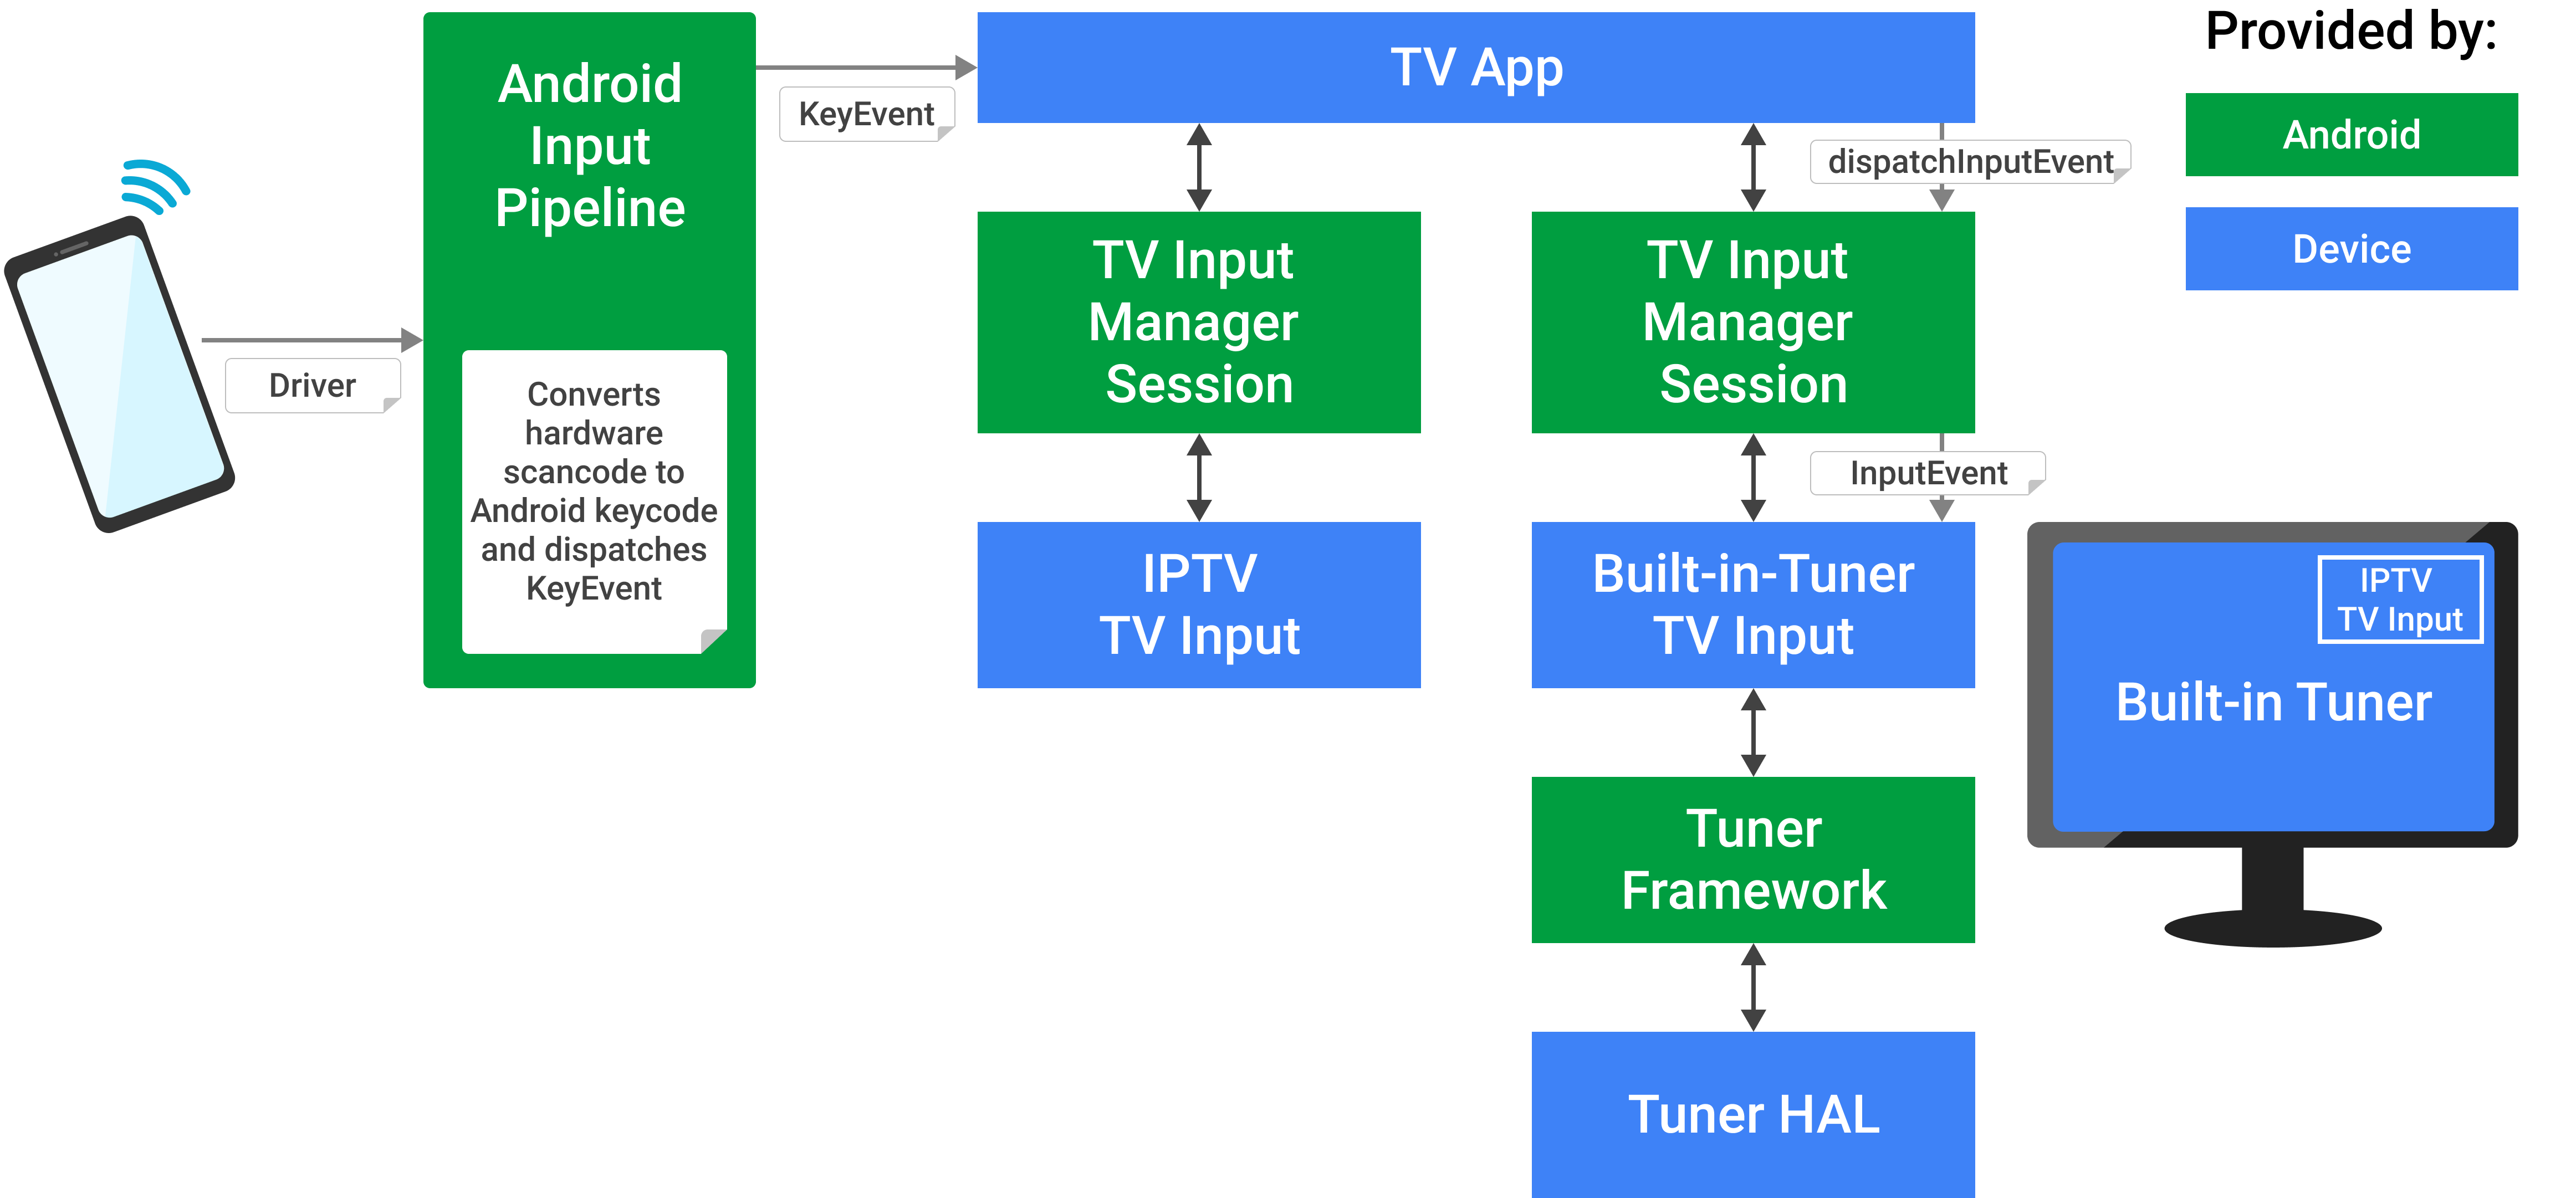 Android TV KeyEvent